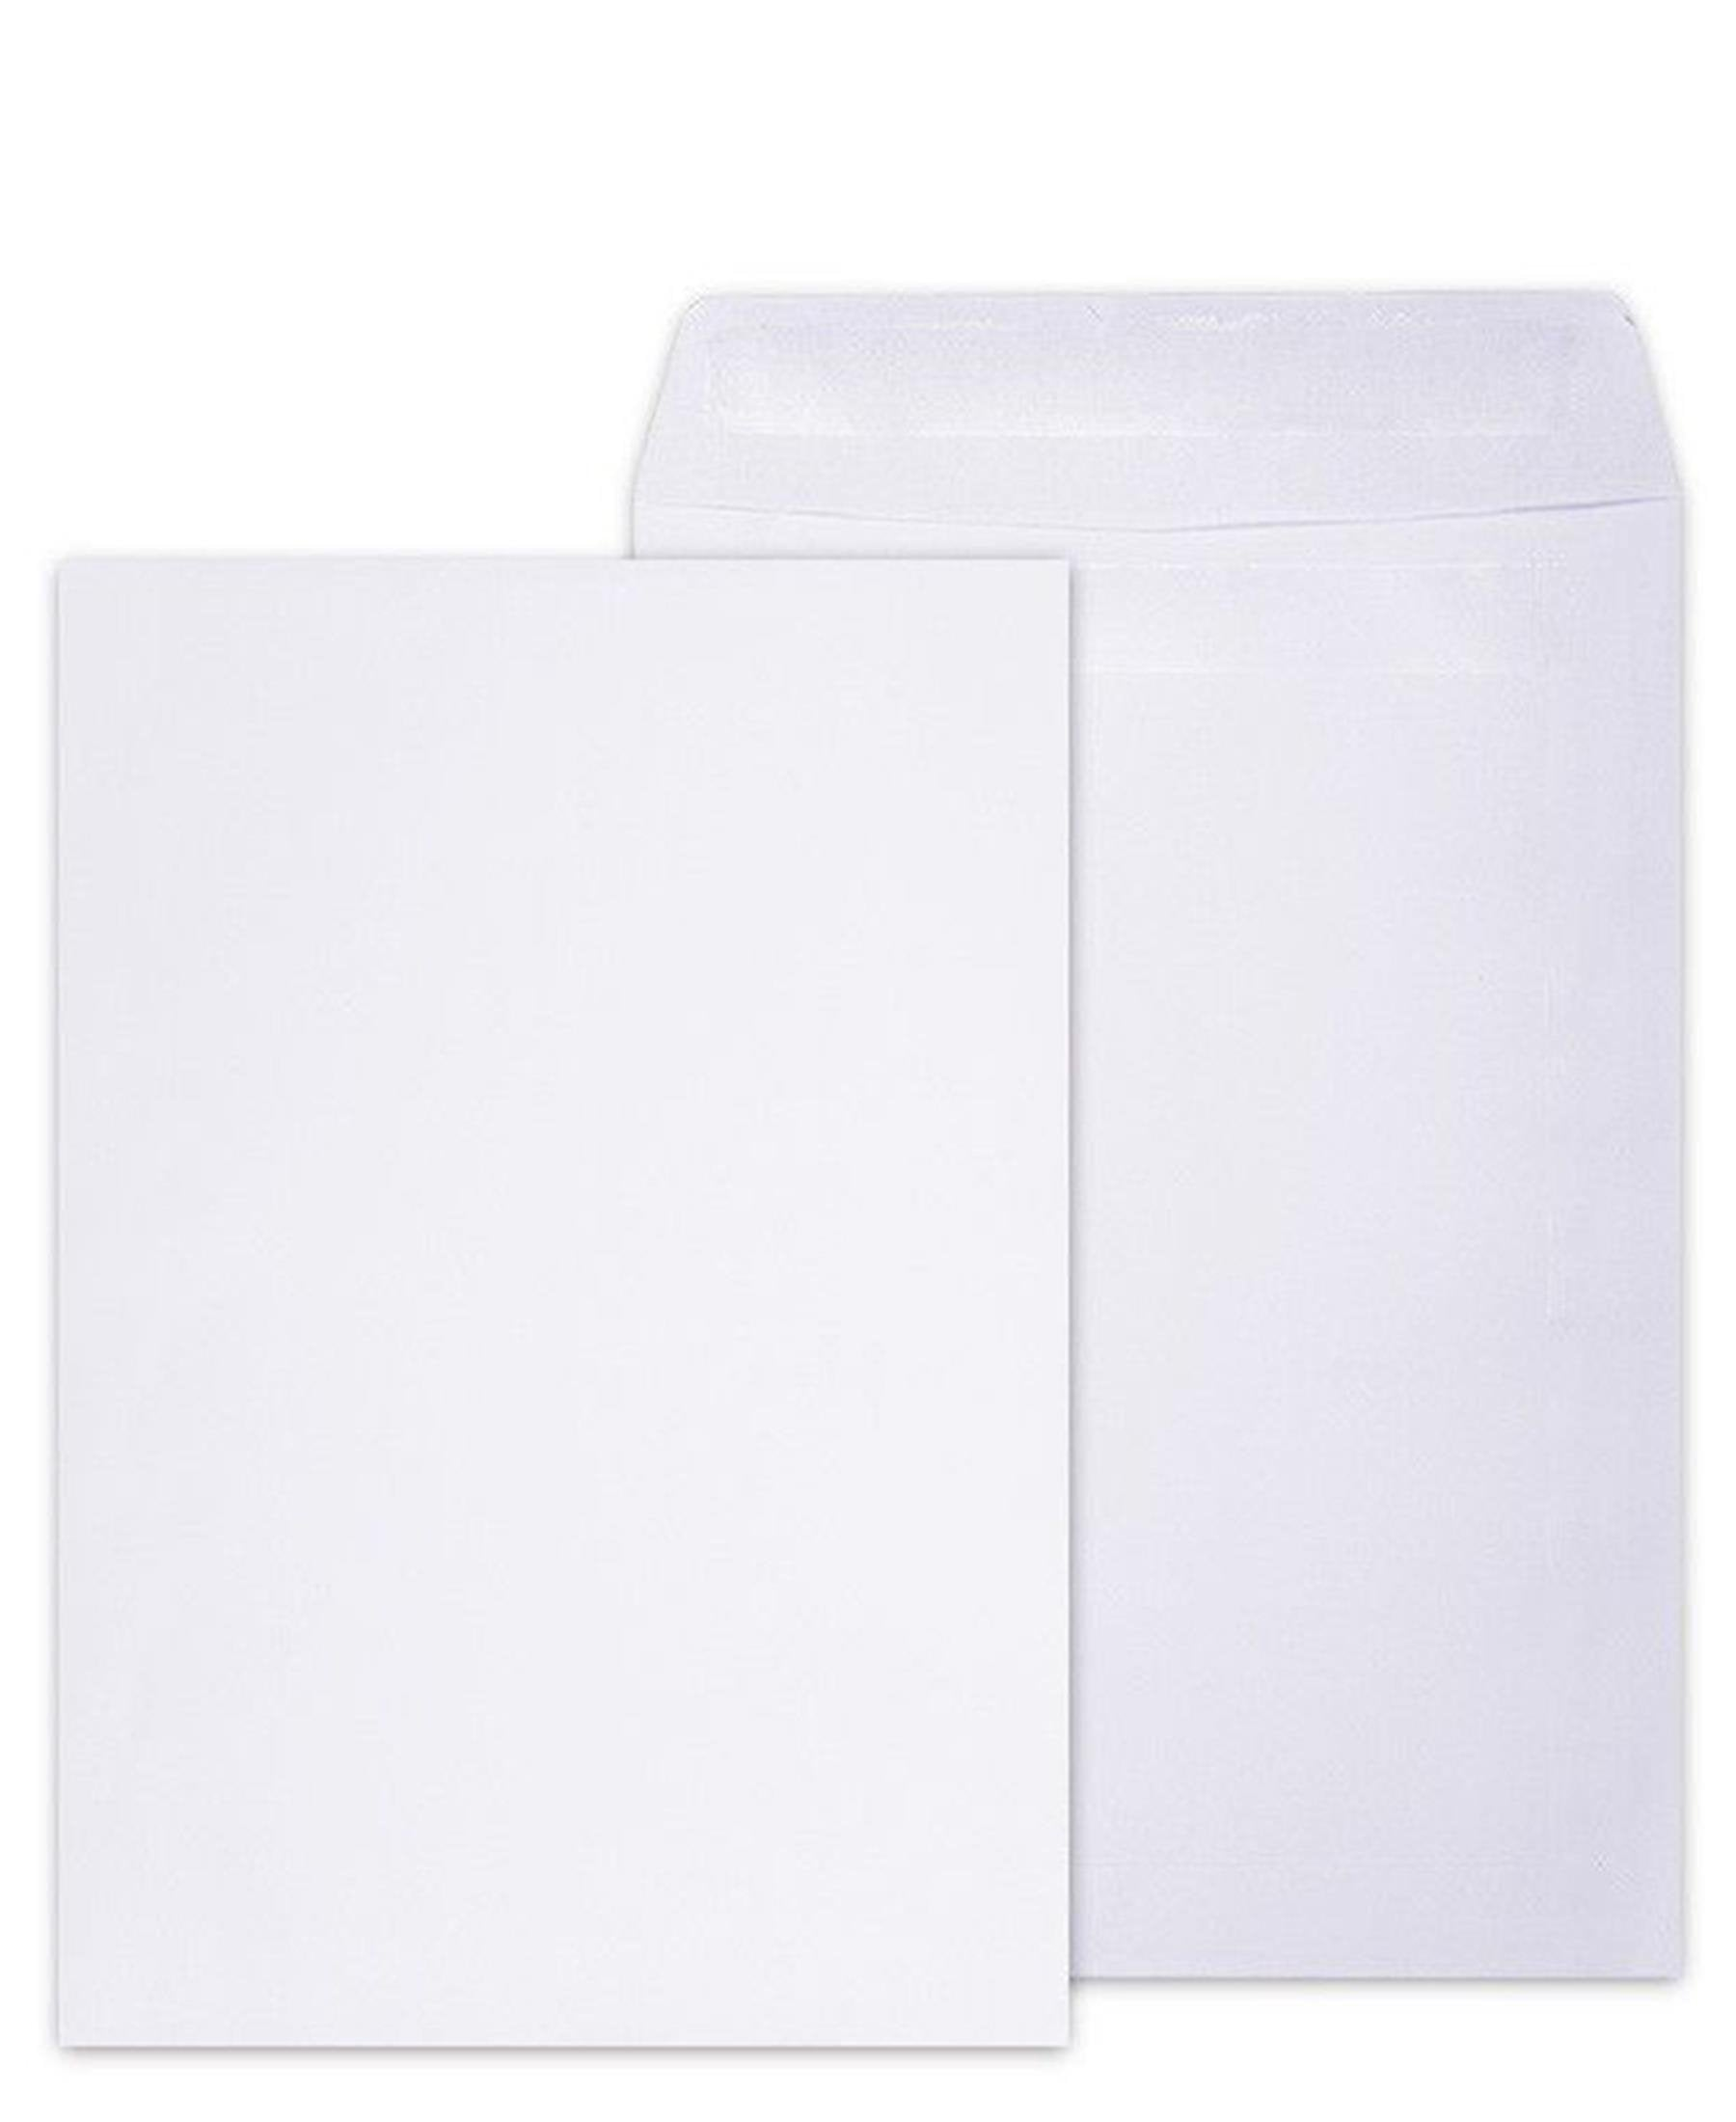 Marlin 10 Pack C4P 324x229mm Self Seal Envelopes - White